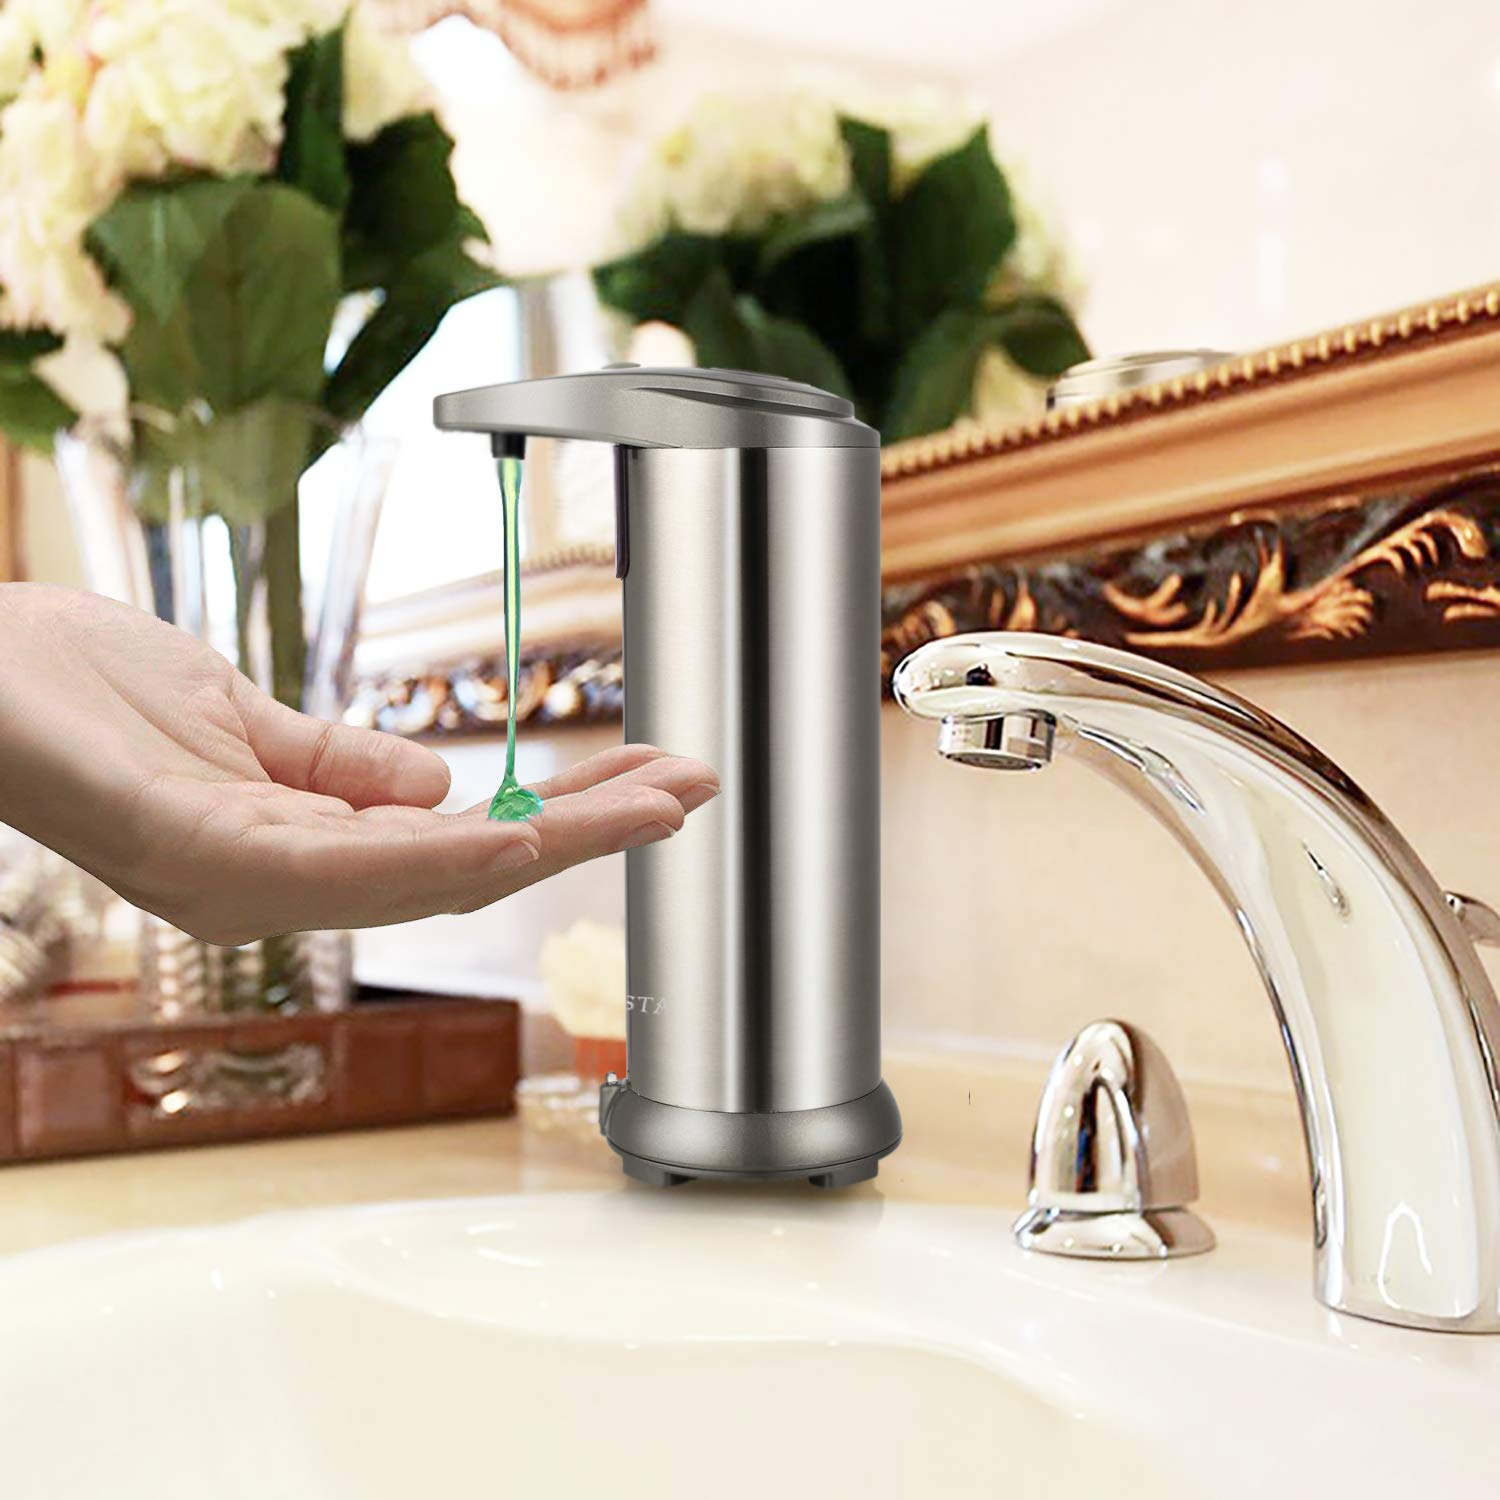 Chesta Automatic Soap Dispenser Stainless-Steel Pump for Kitchen Sinks /& Bathroom Countertops Handsfree Canister Which Helps to Eliminate The Transfer of Bacteria